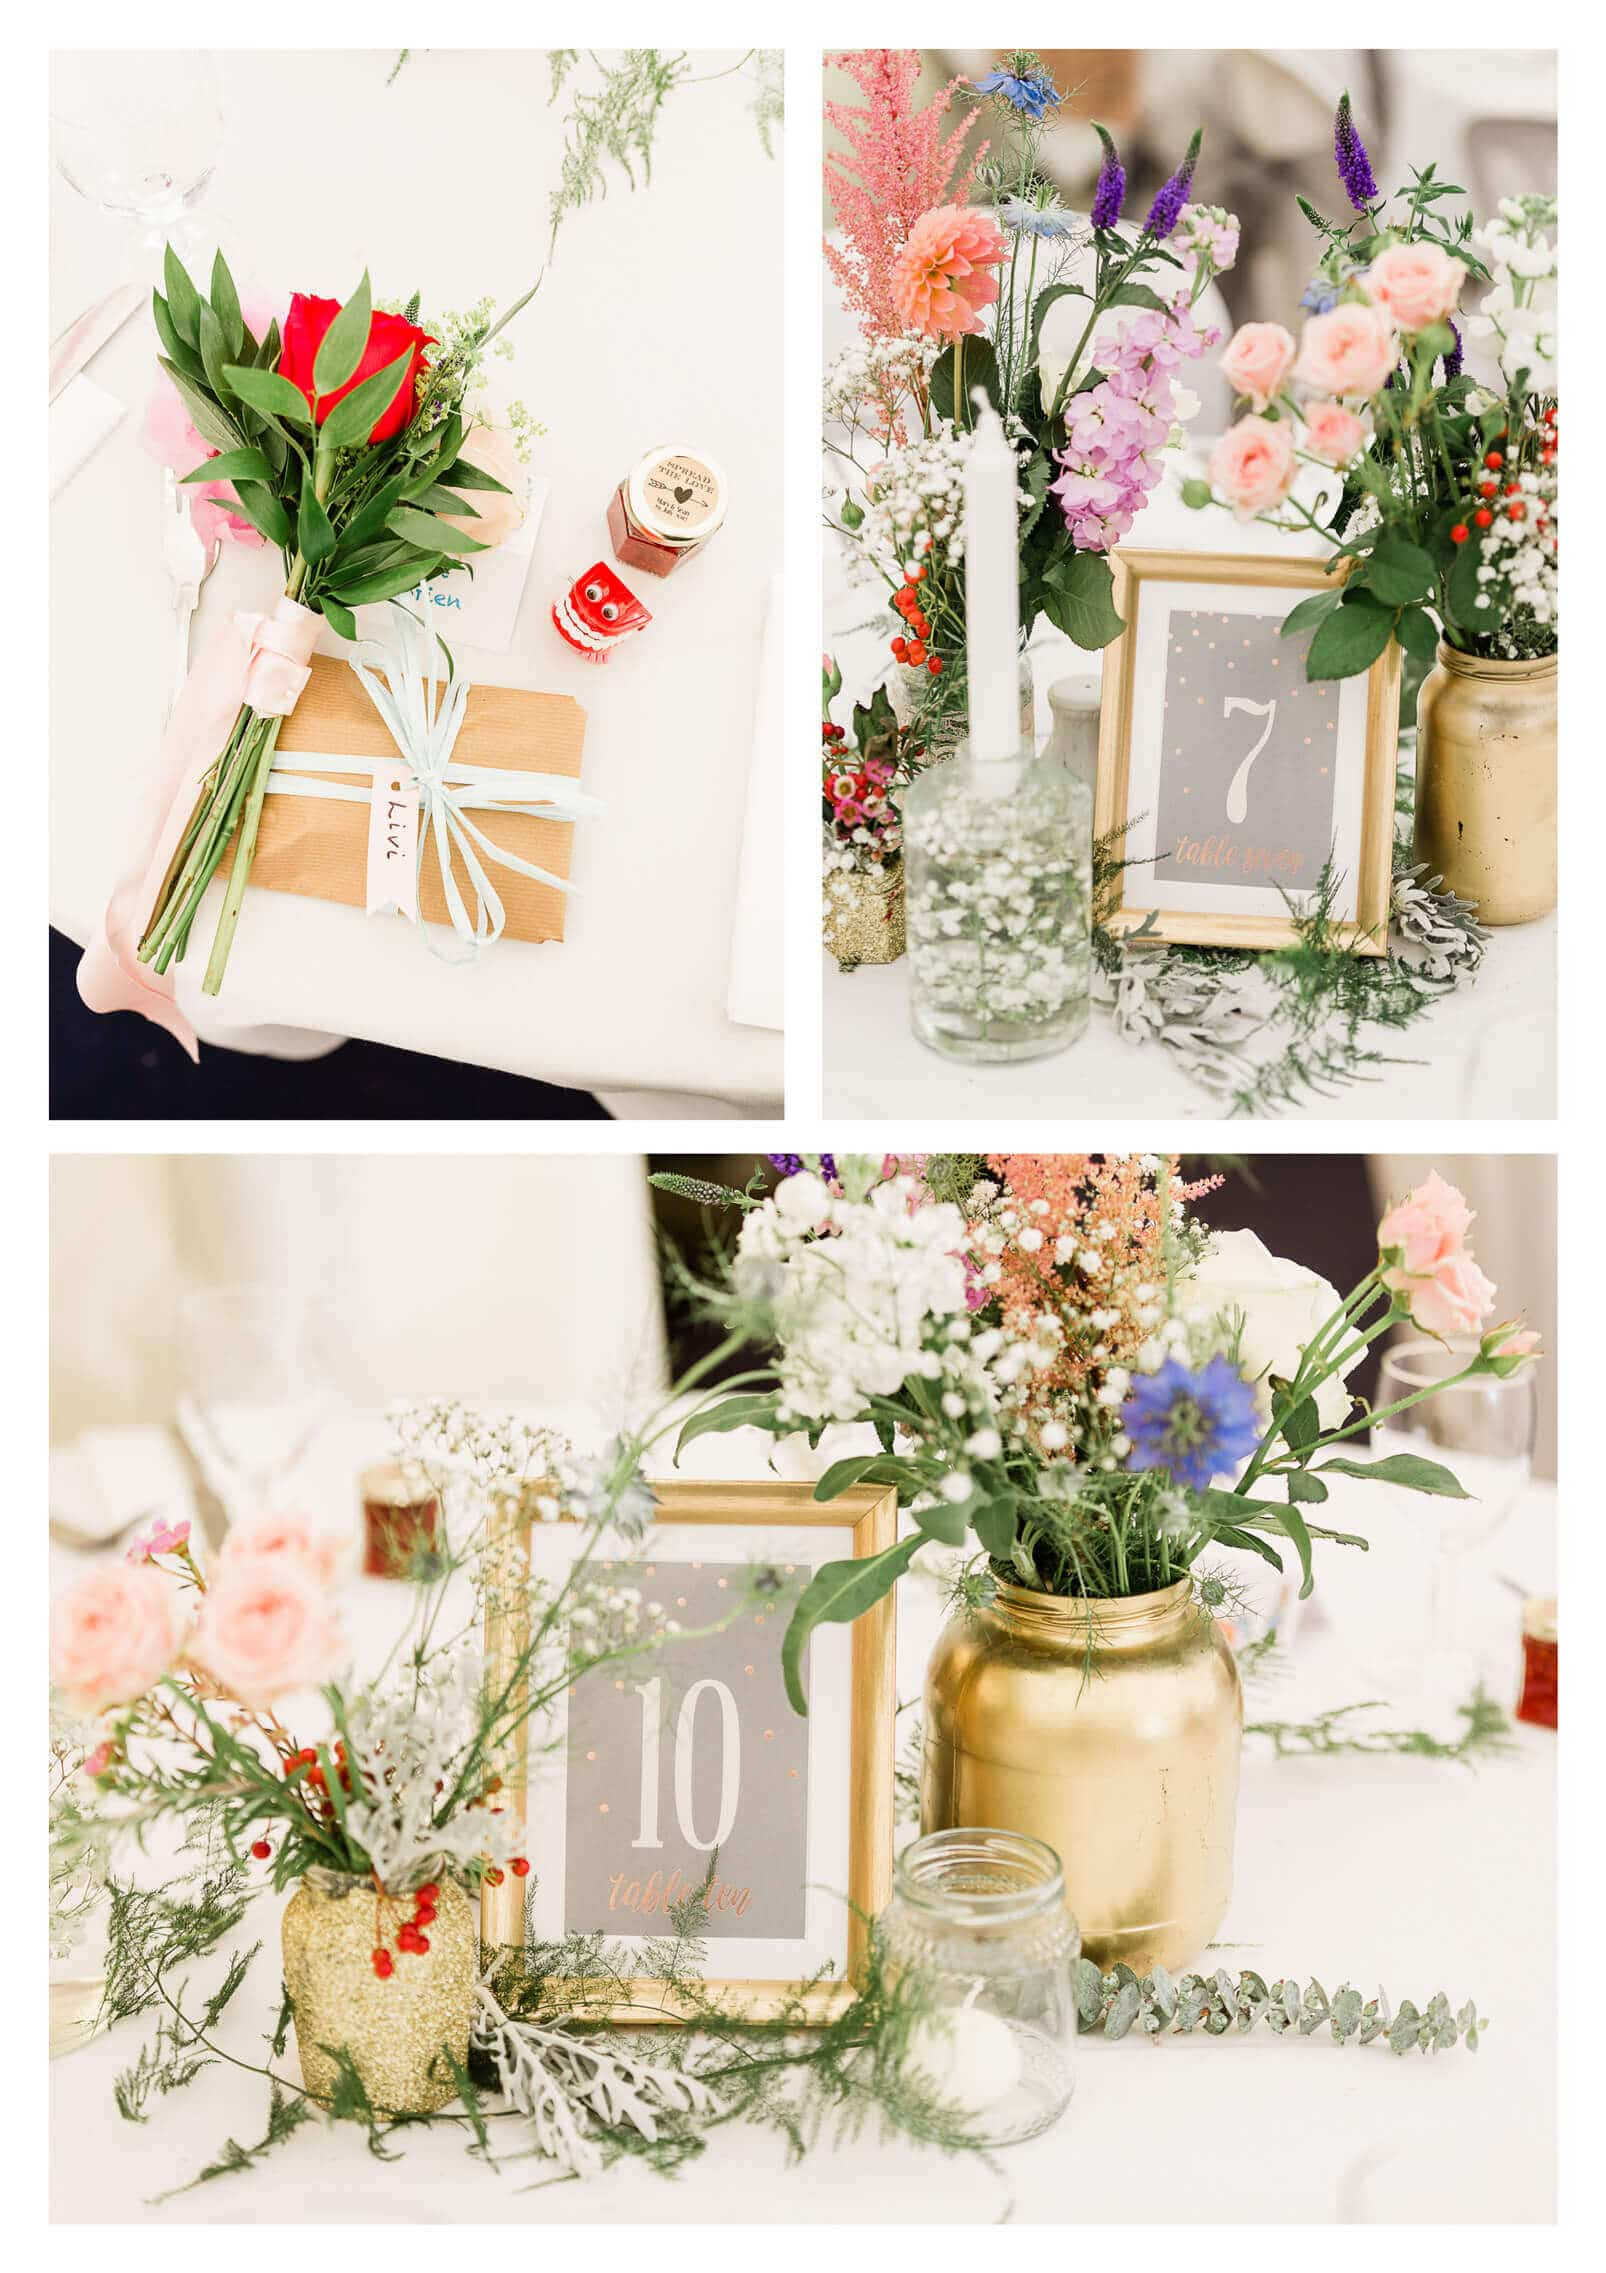 Floral table decorations at Lewes Inn wedding venue | Lewes photographer